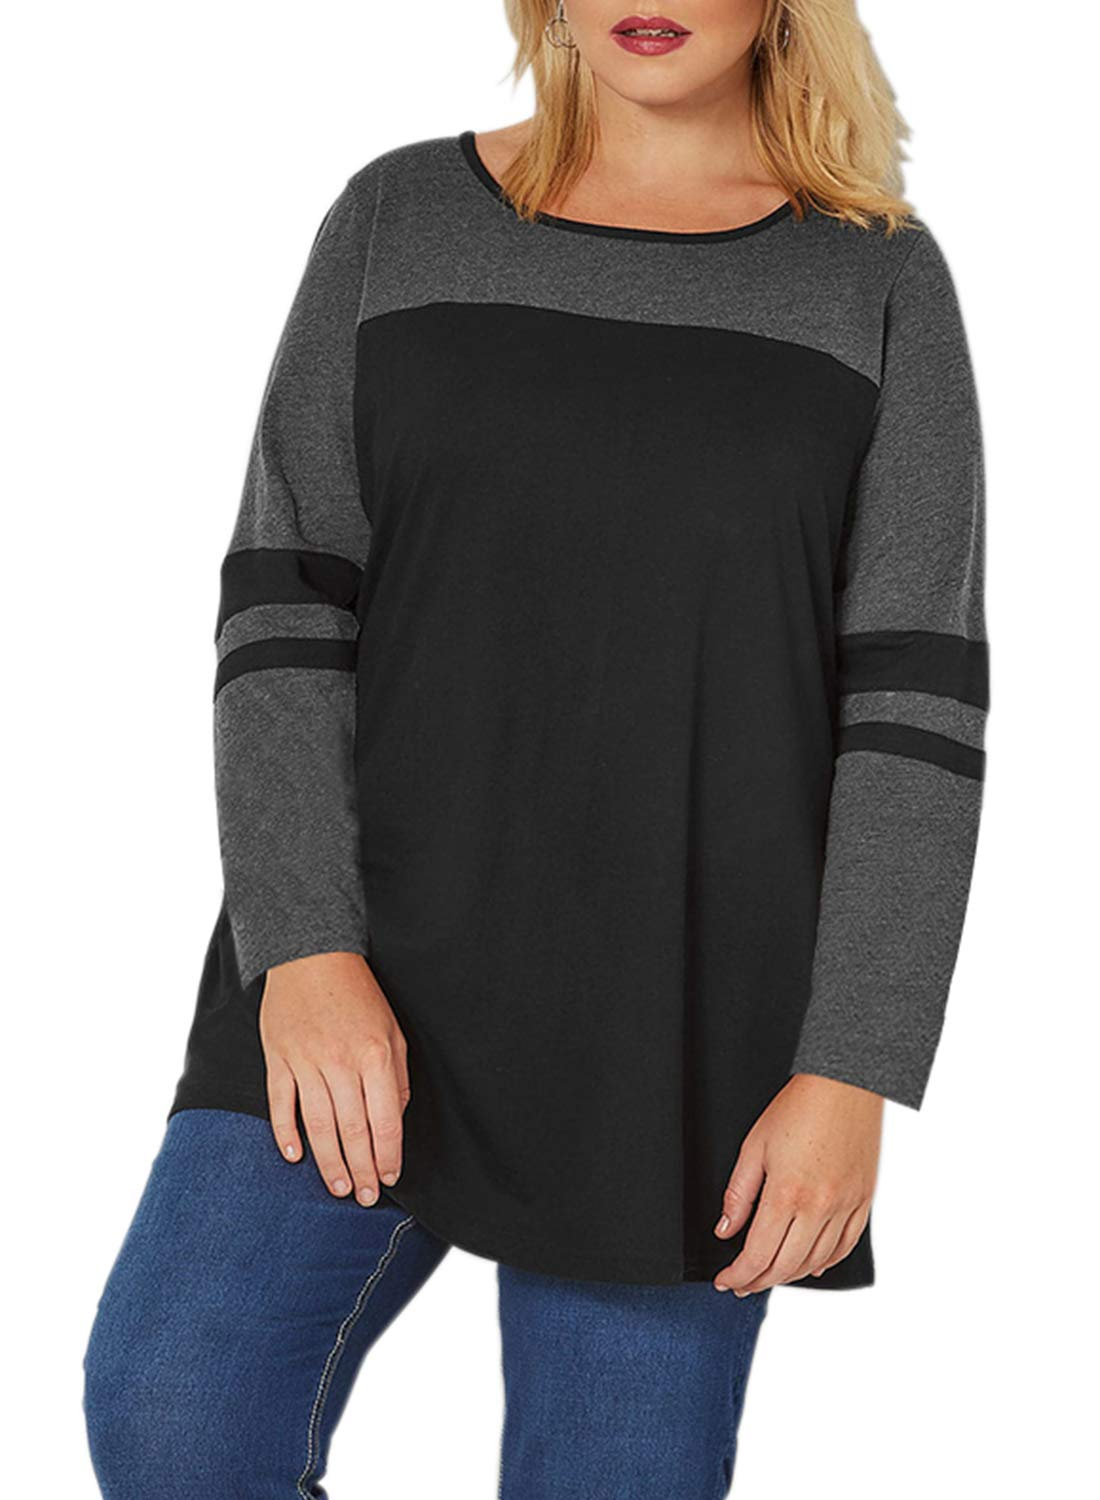 Itsmode Long Sleeve Juniors Striped T Shirts for Women Color Block Plus Size Cotton Tops and Blouses Maternity Tee Baseball Jersey Shirts Sport Active Sweater 3XL Black